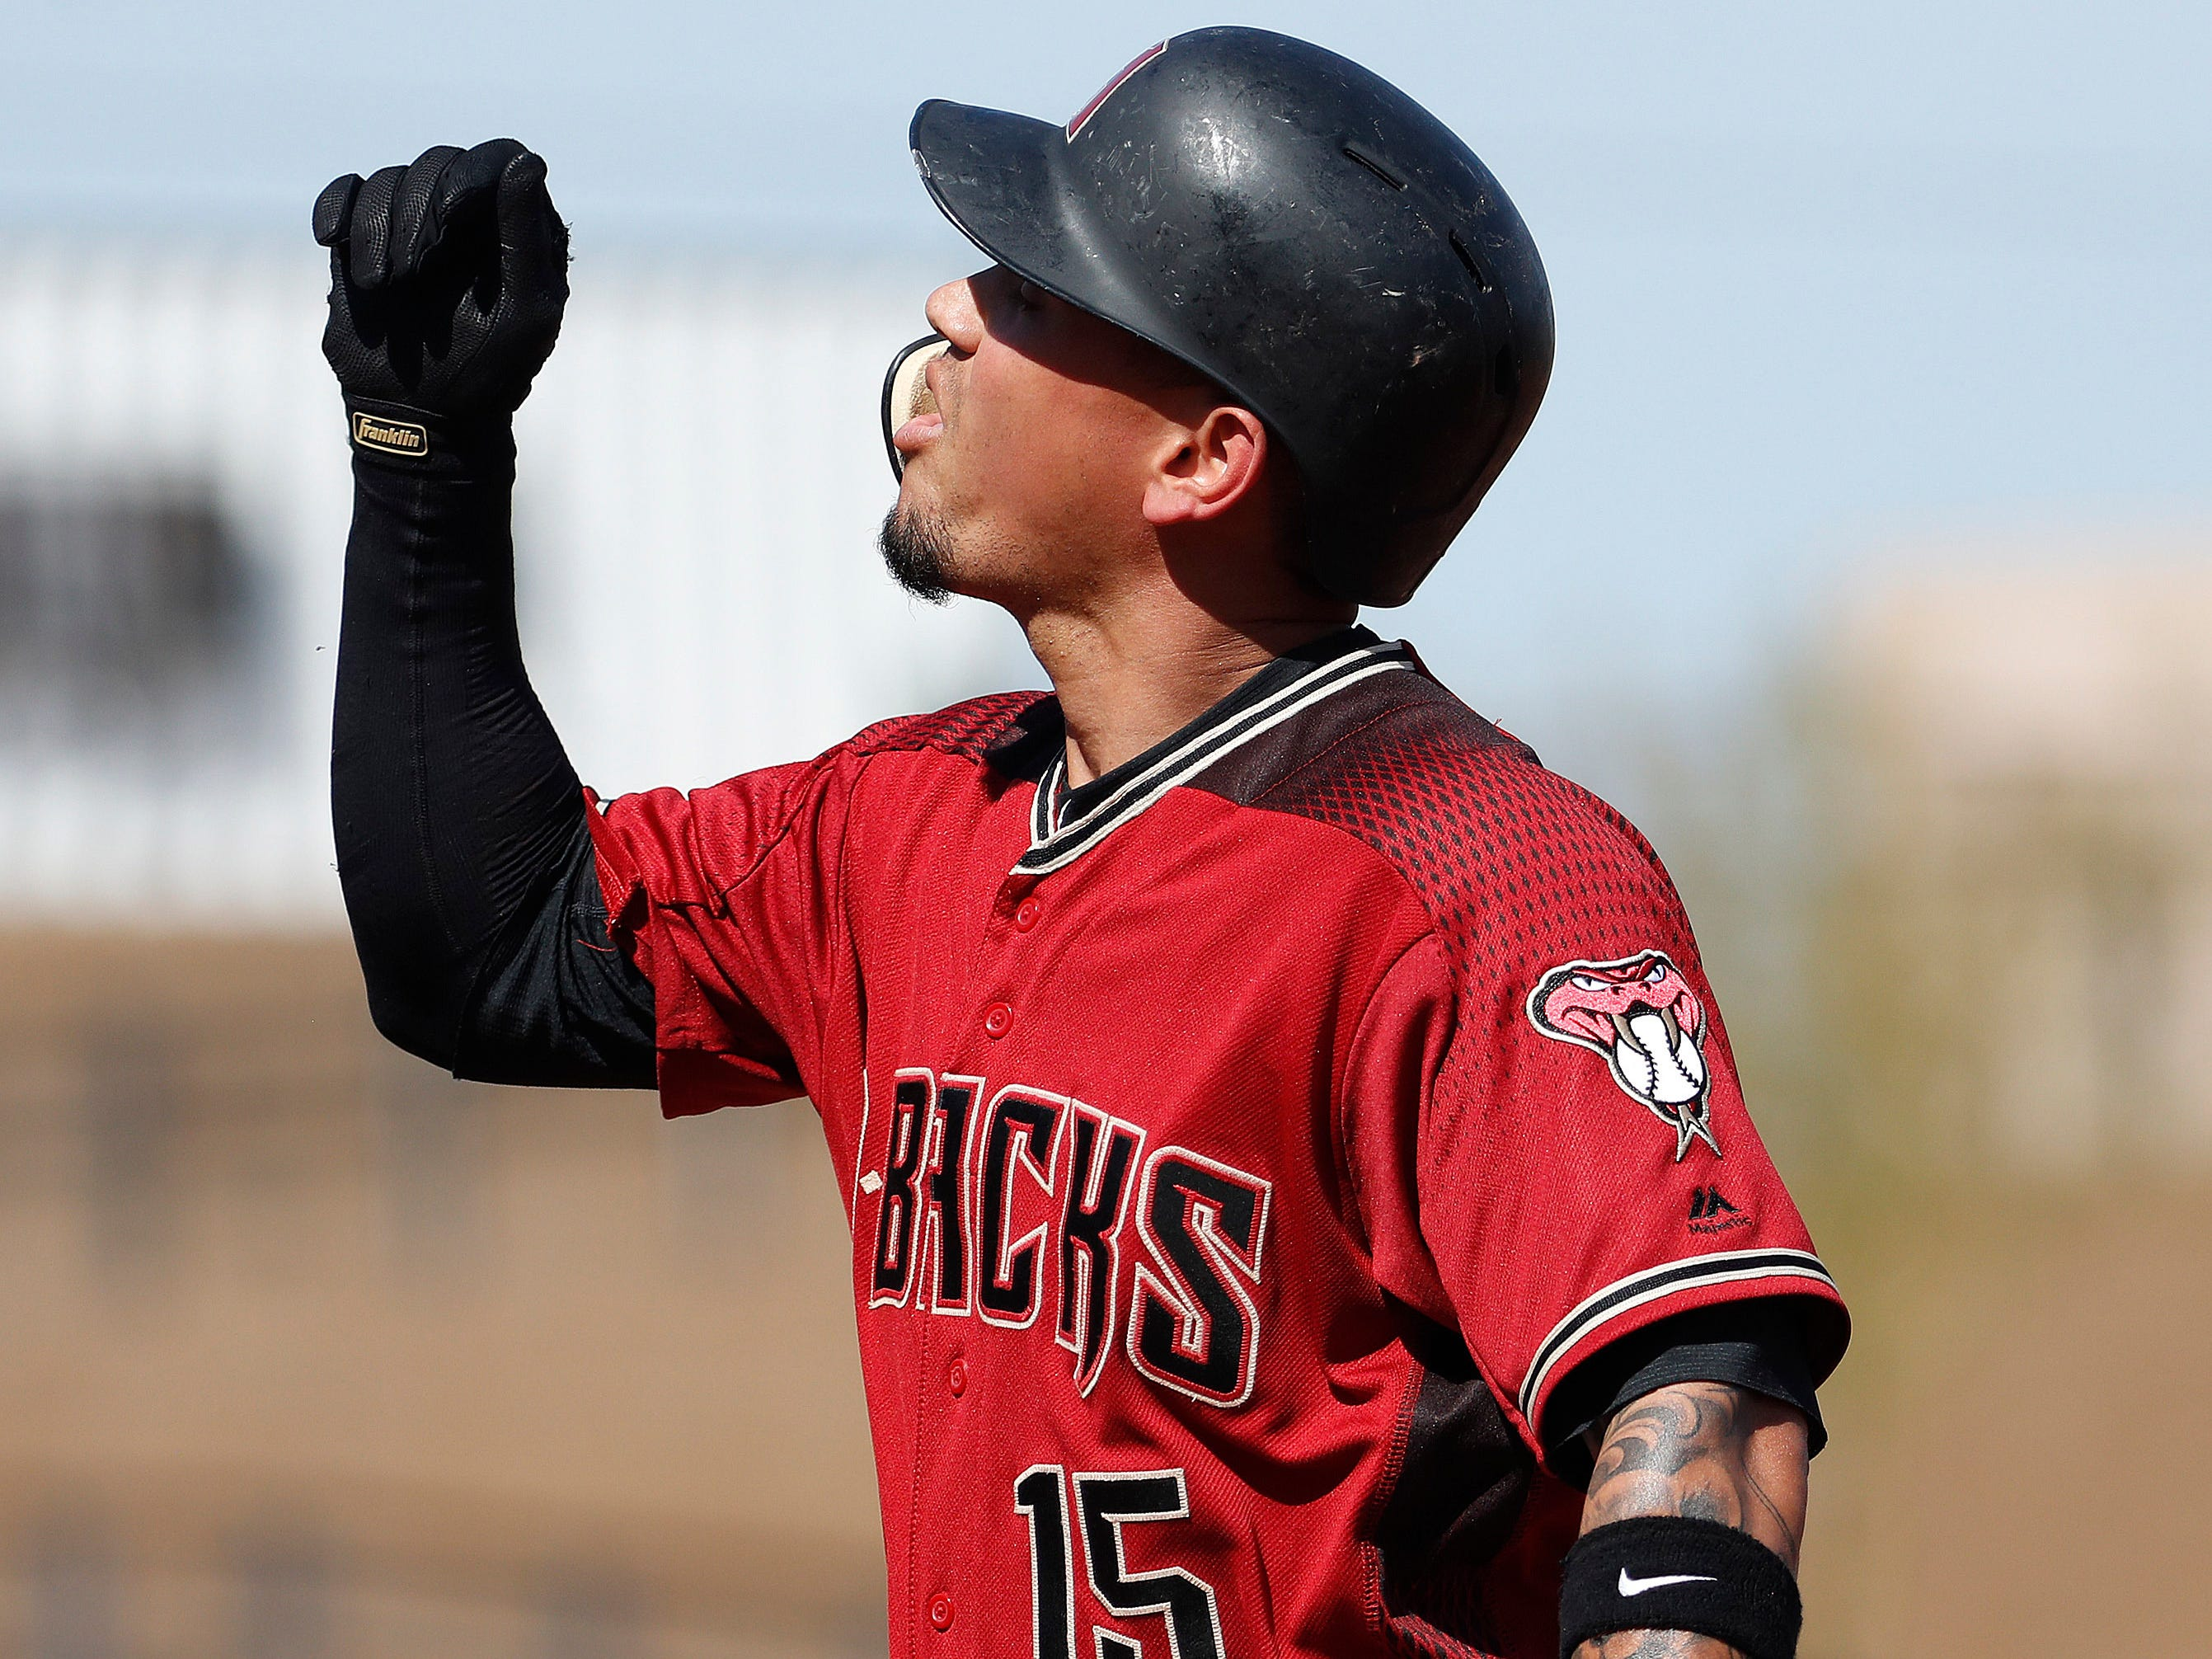 Arizona Diamondbacks' Ildemaro Vargas celebrates a base hit against the Cleveland Indians during the first inning of a spring training baseball game Thursday, Feb. 28, 2019, in Scottsdale, Ariz.